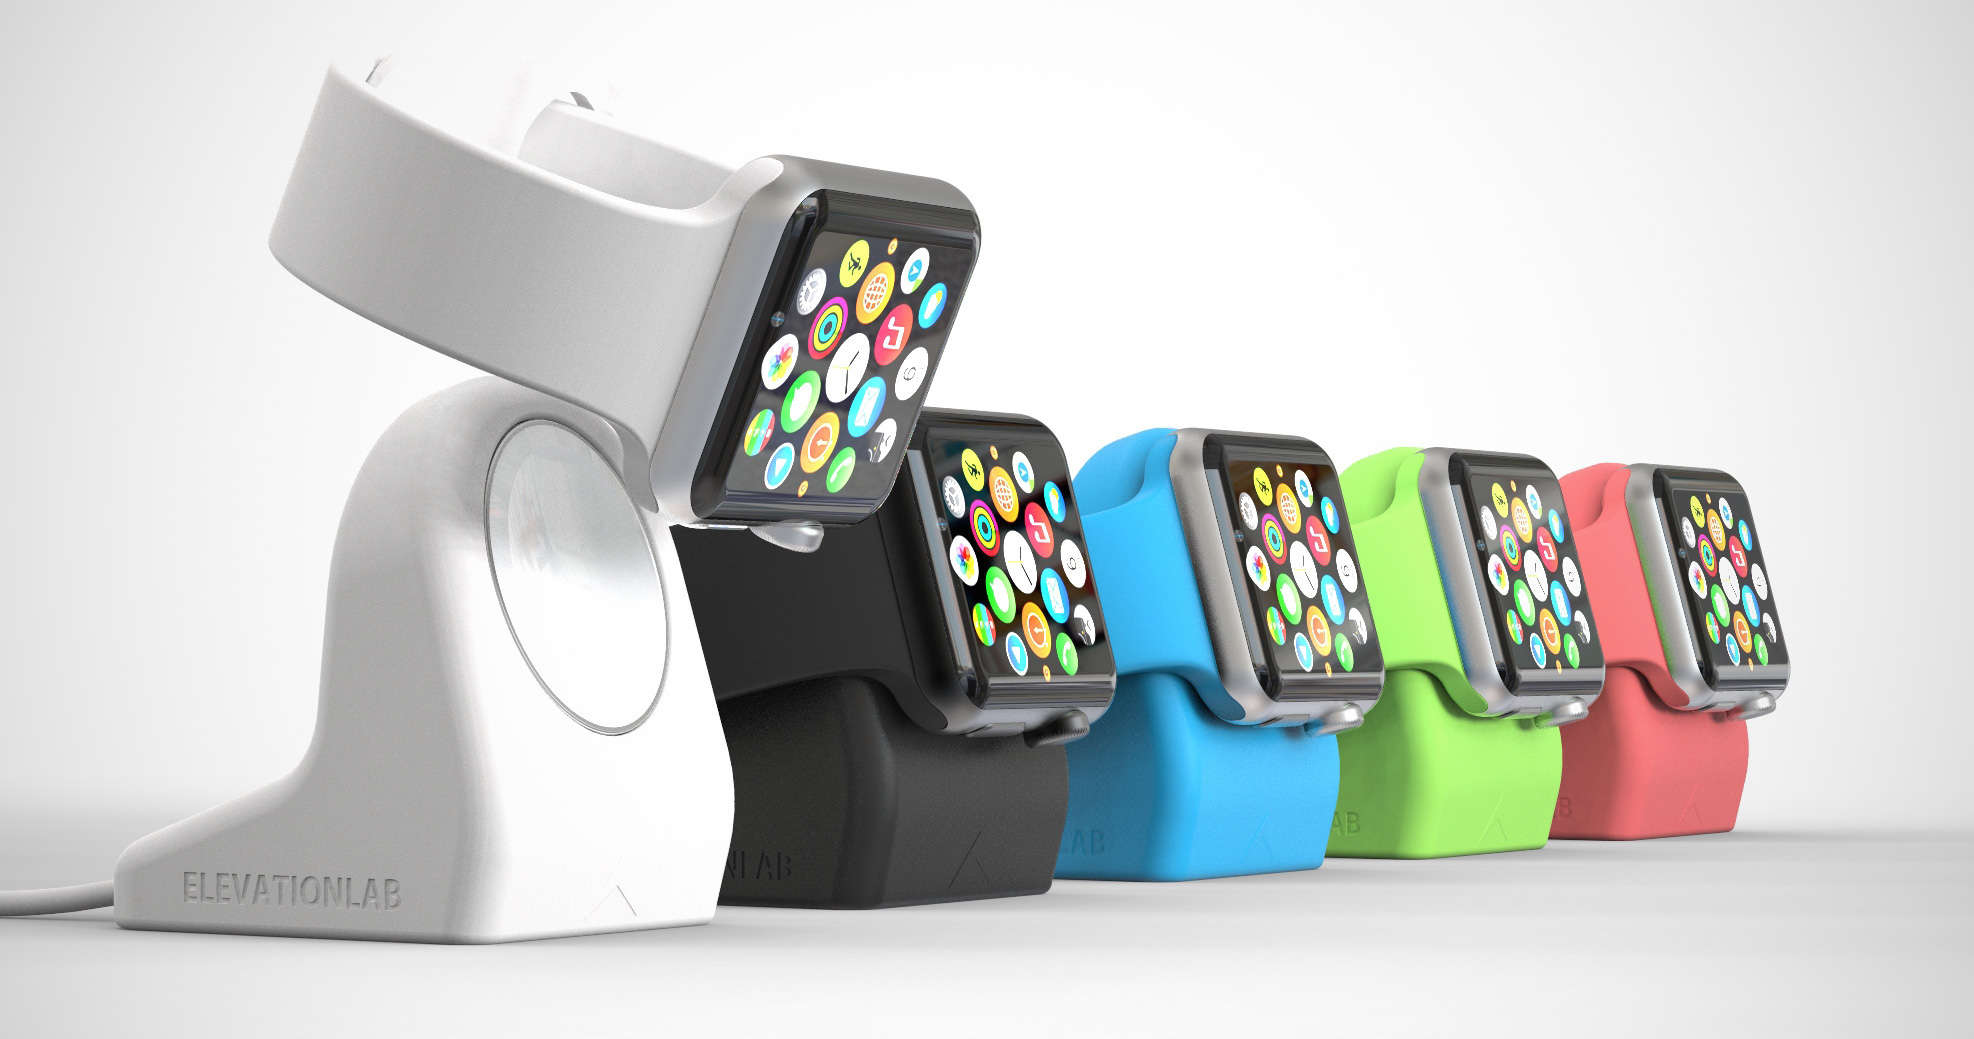 NightStand is the first third-party Apple Watch accessory in Apple Stores.